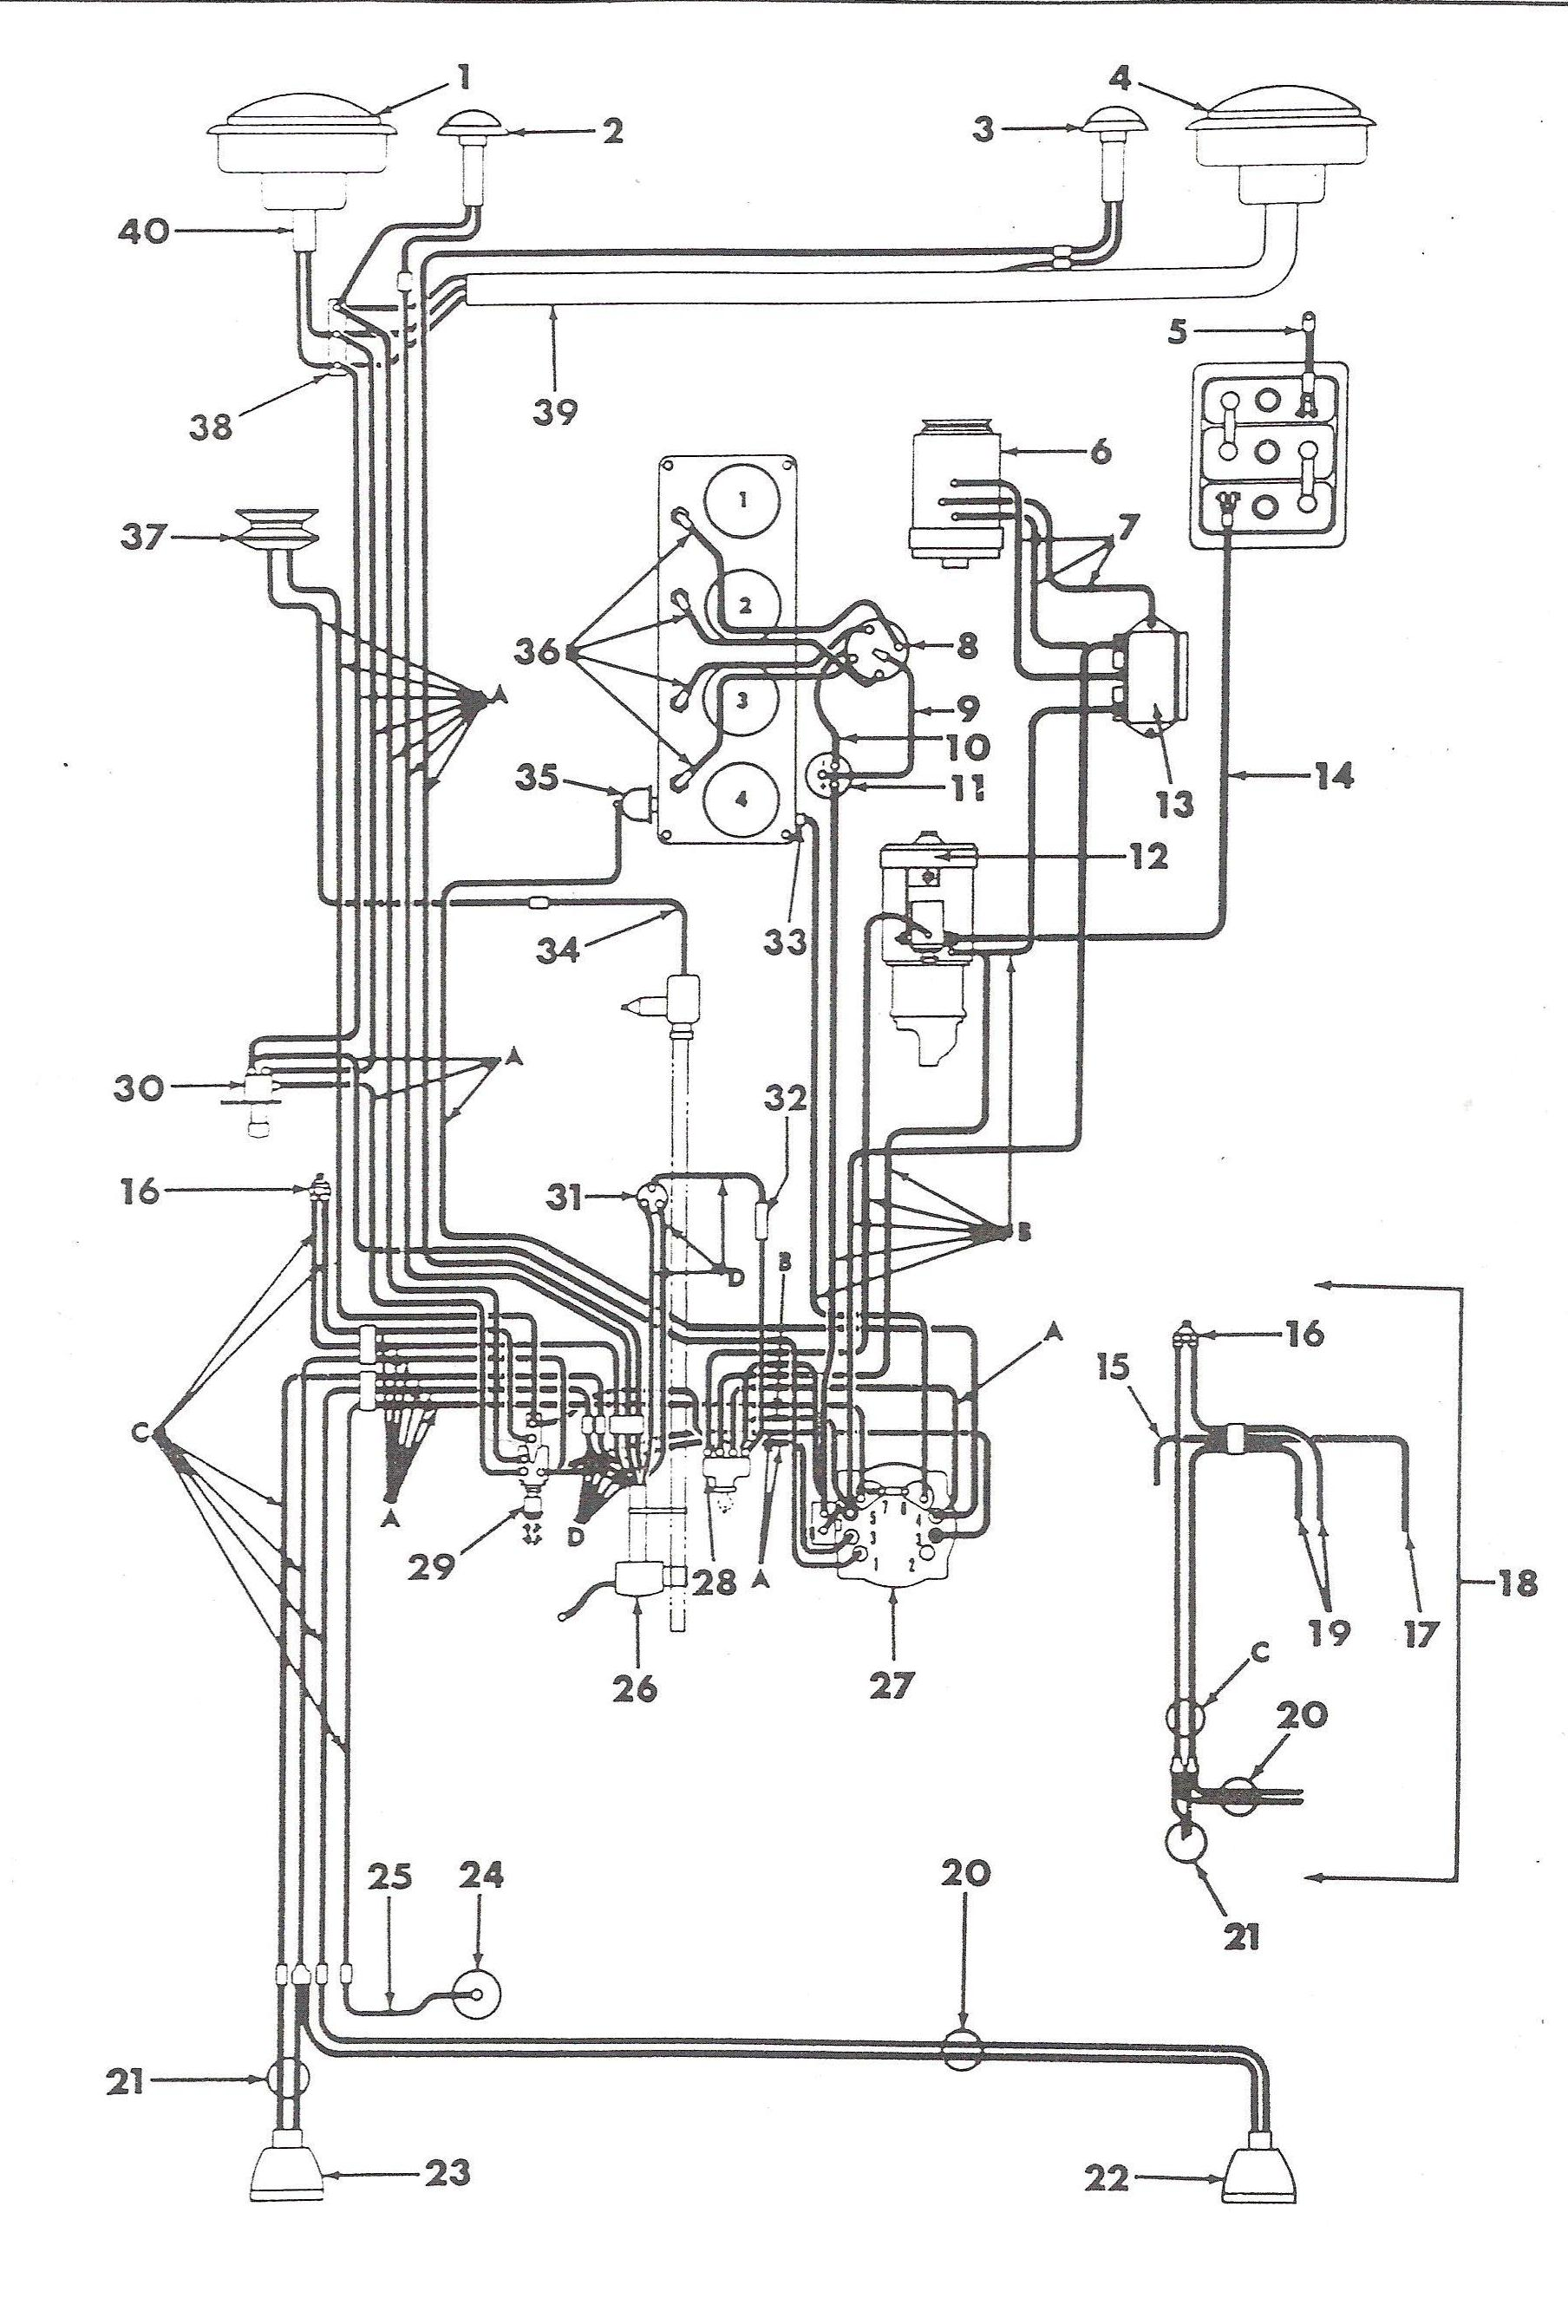 Strange 1957 Dodge Wiring Diagram Basic Electronics Wiring Diagram Wiring Cloud Grayisramohammedshrineorg